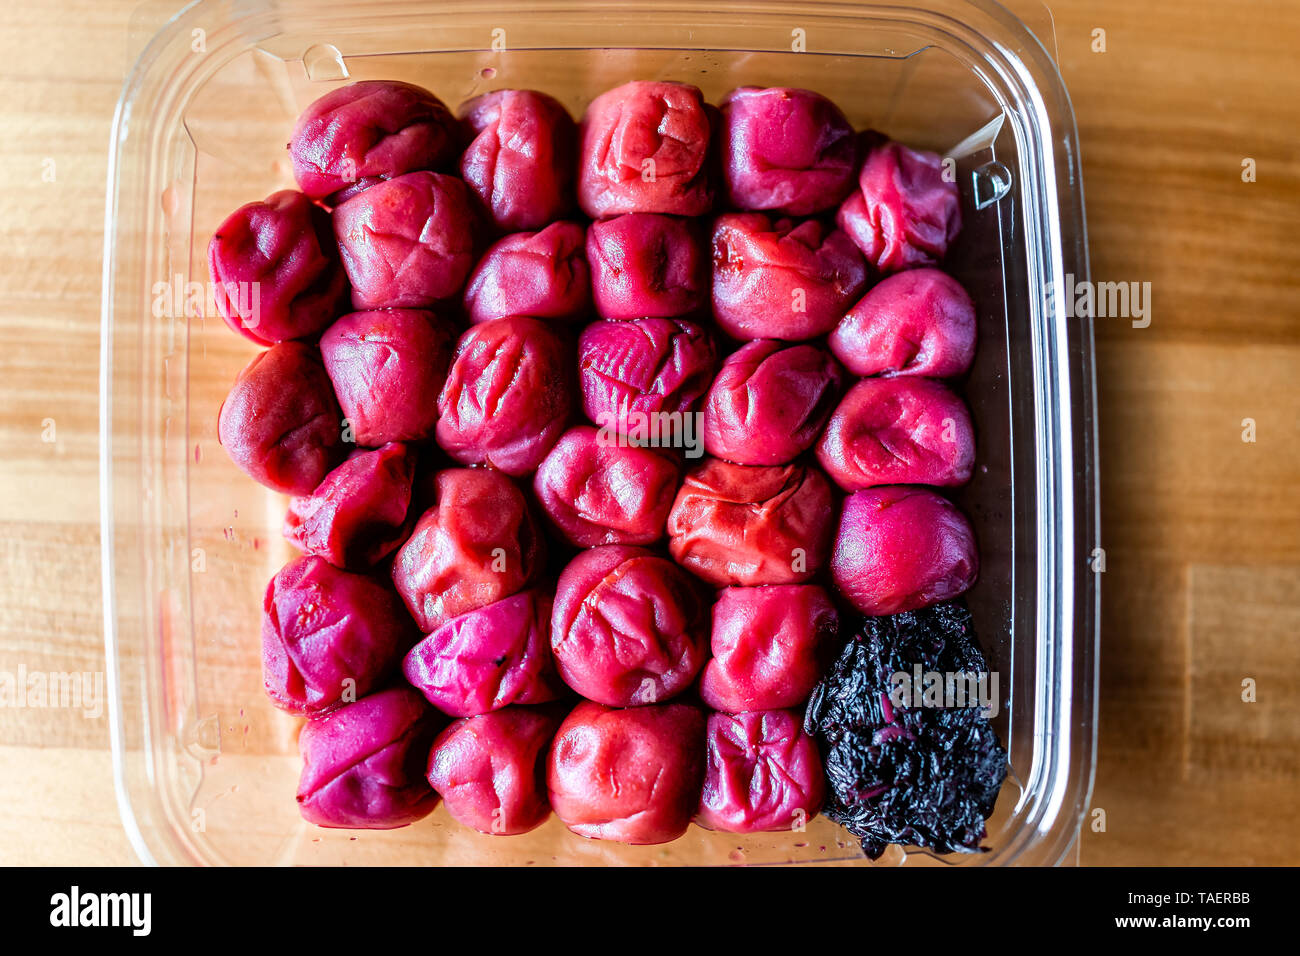 Traditional japanese storebought red umeboshi pickles made with ume plum flat top closeup on wooden table with pink shiso leaf - Stock Image